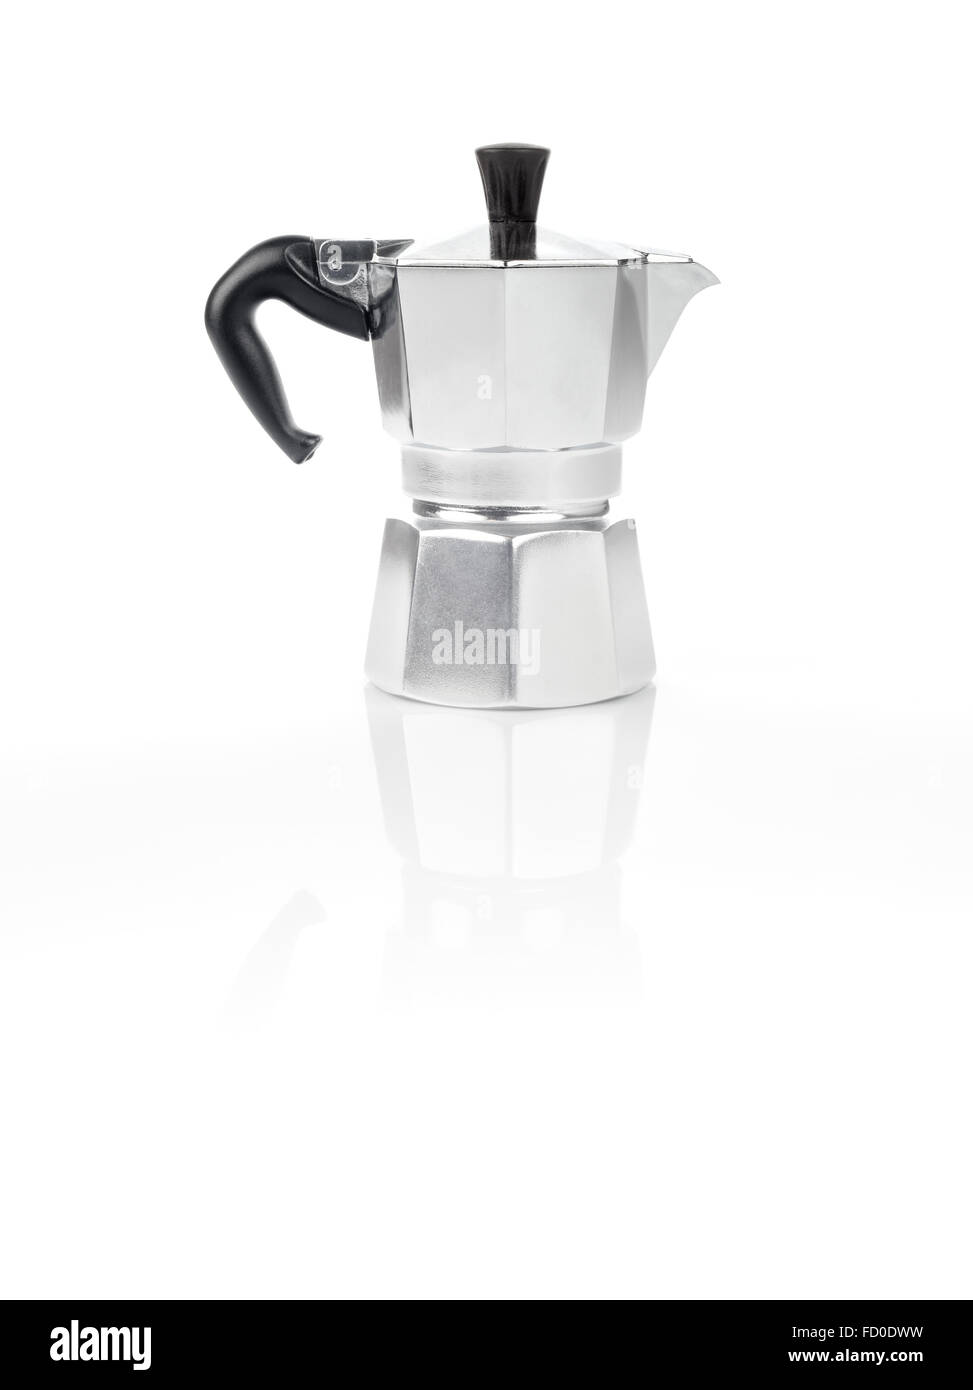 Moka Pot, also known as stove top espresso machine italian coffee maker on white background and reflection - Stock Image